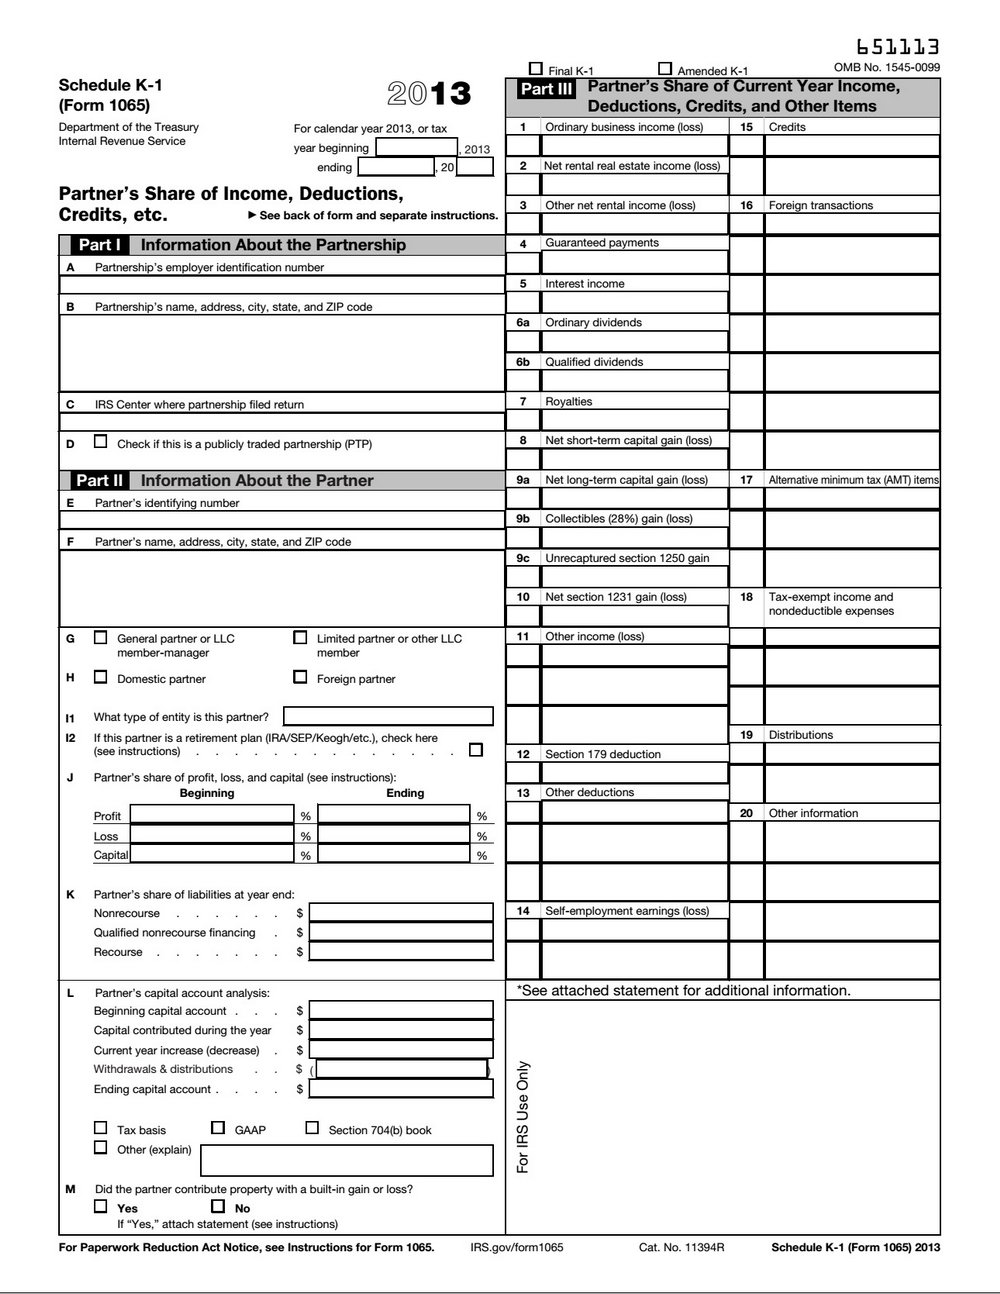 2014 Form 1120s